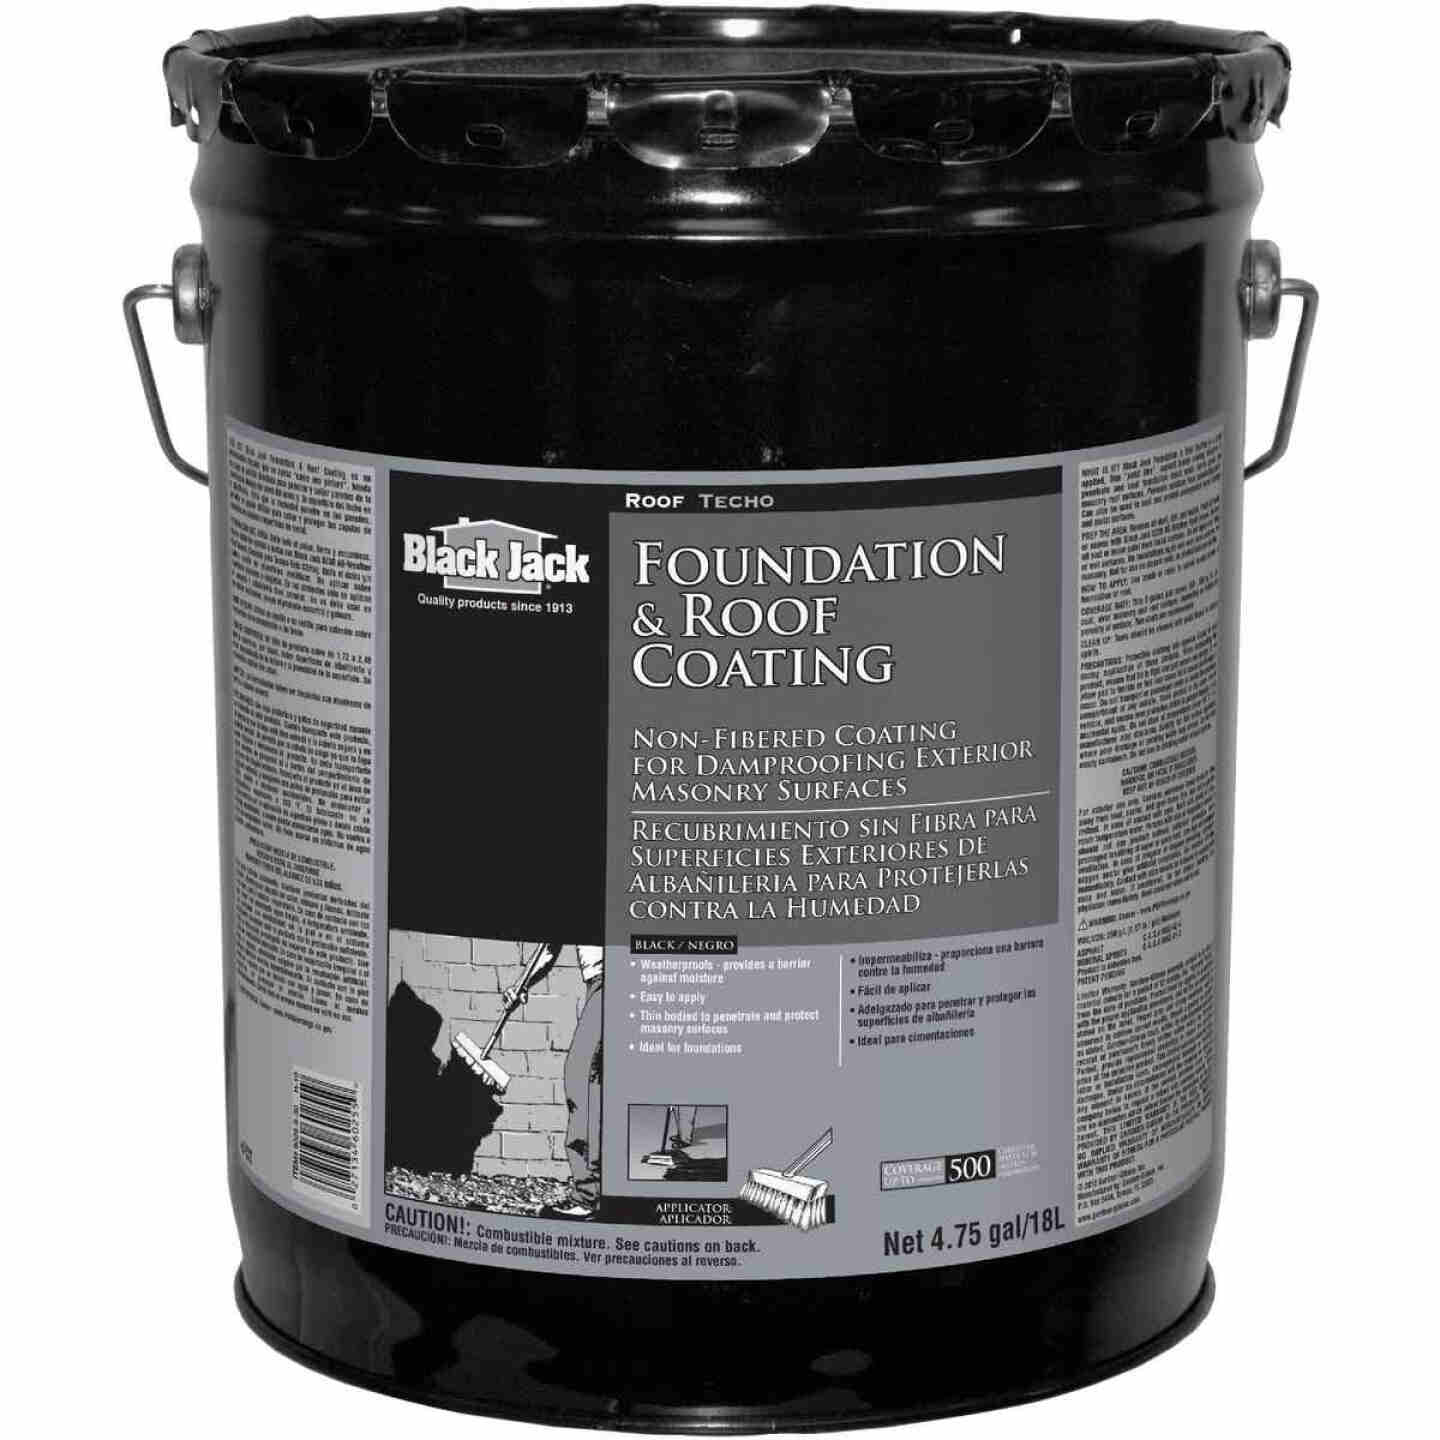 Black Jack 5 Gal. Non-Fibered Foundation and Roof Coating Image 1